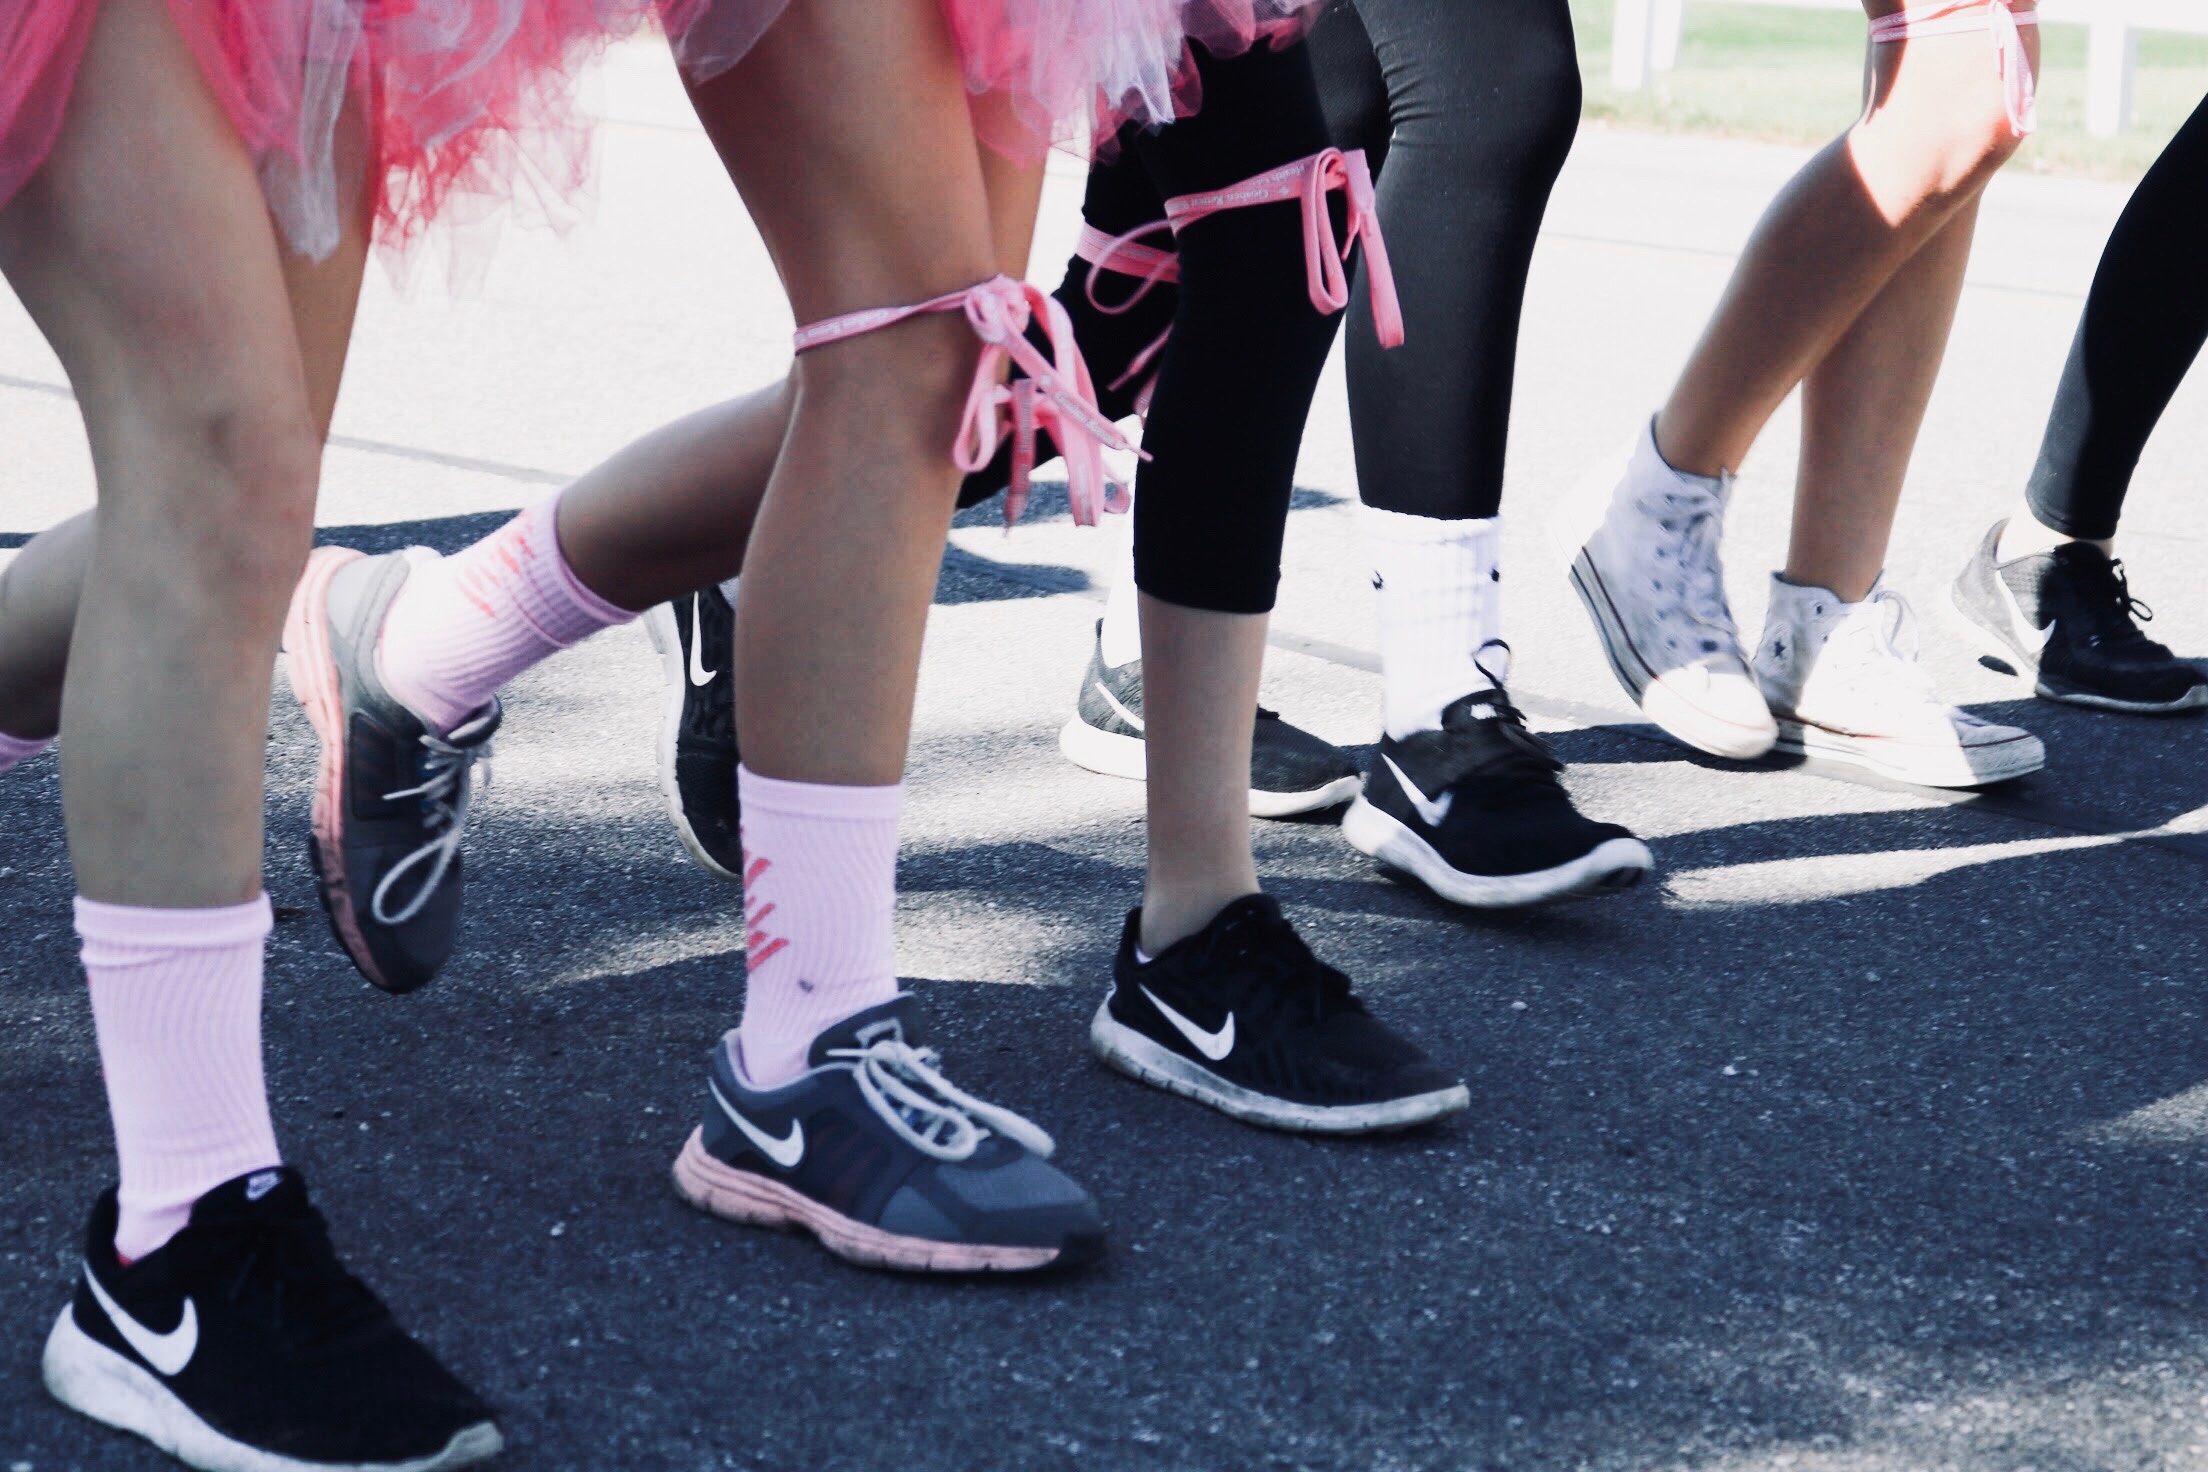 Unidentified runners participating in a run or walk. Photo by  sydney Rae  on  Unsplash .